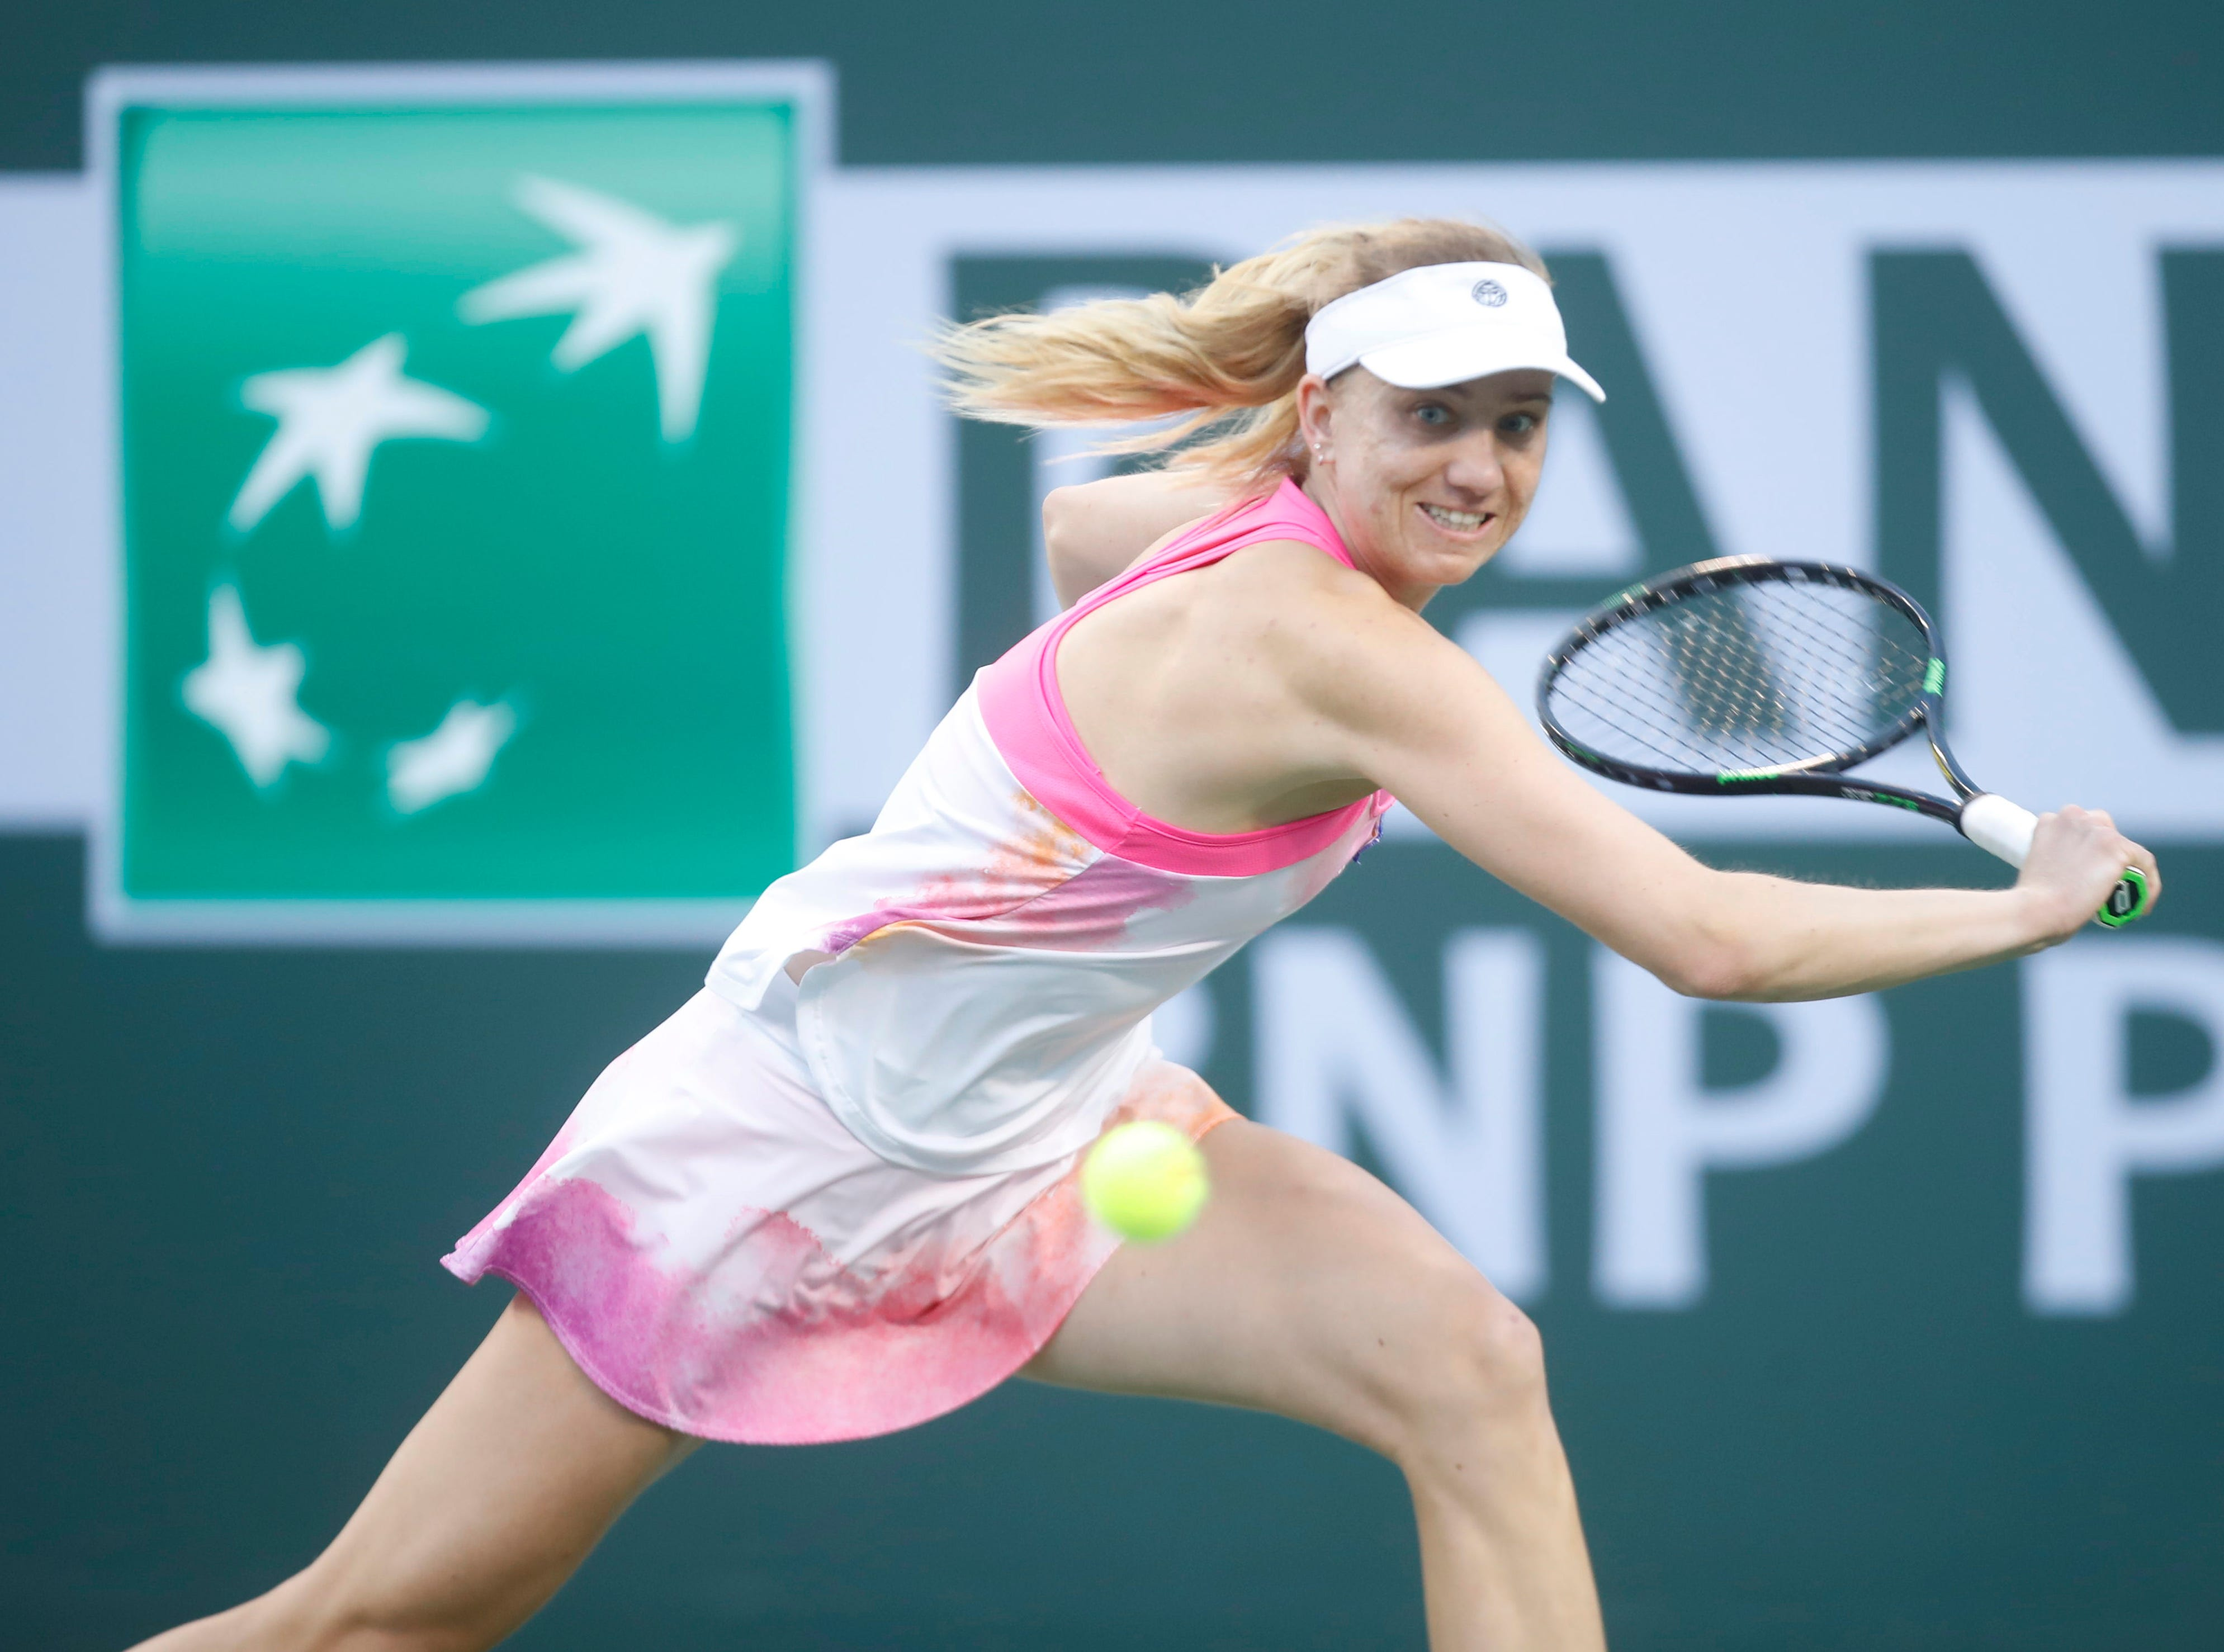 Mona Barthel plays against Venus Williams on Stadium One at the 2019 BNP Paribas Open at Indian Wells Tennis Garden on March 12, 2019. Williams won the match 6-4, 6-4.